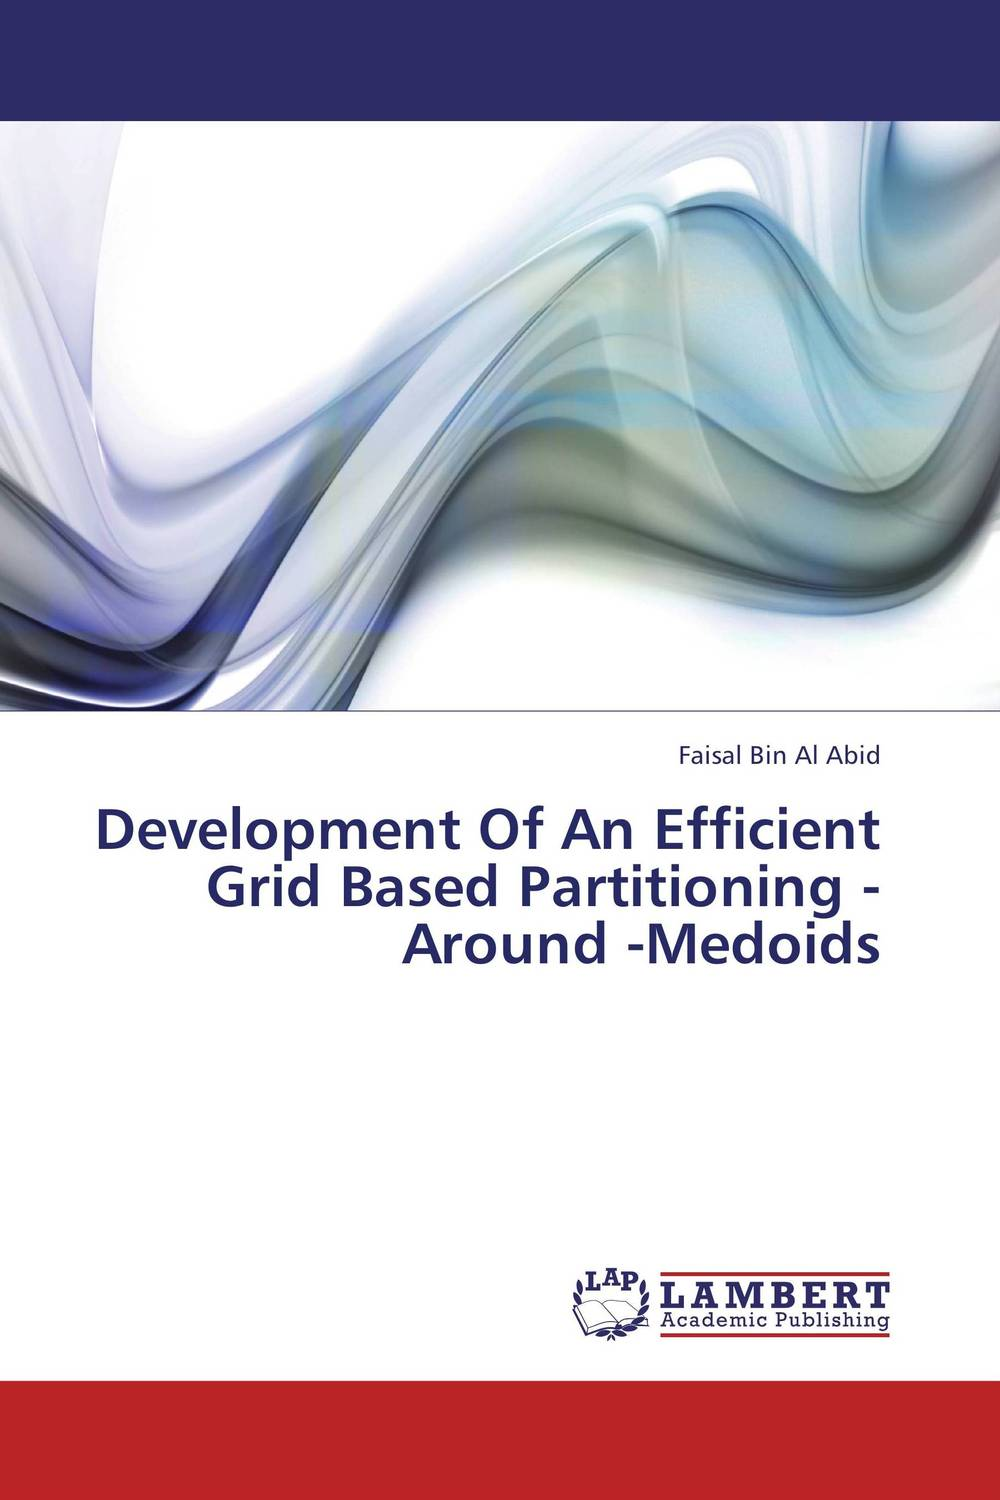 Development Of An Efficient Grid Based Partitioning -Around -Medoids cluster based data labeling for categorical data